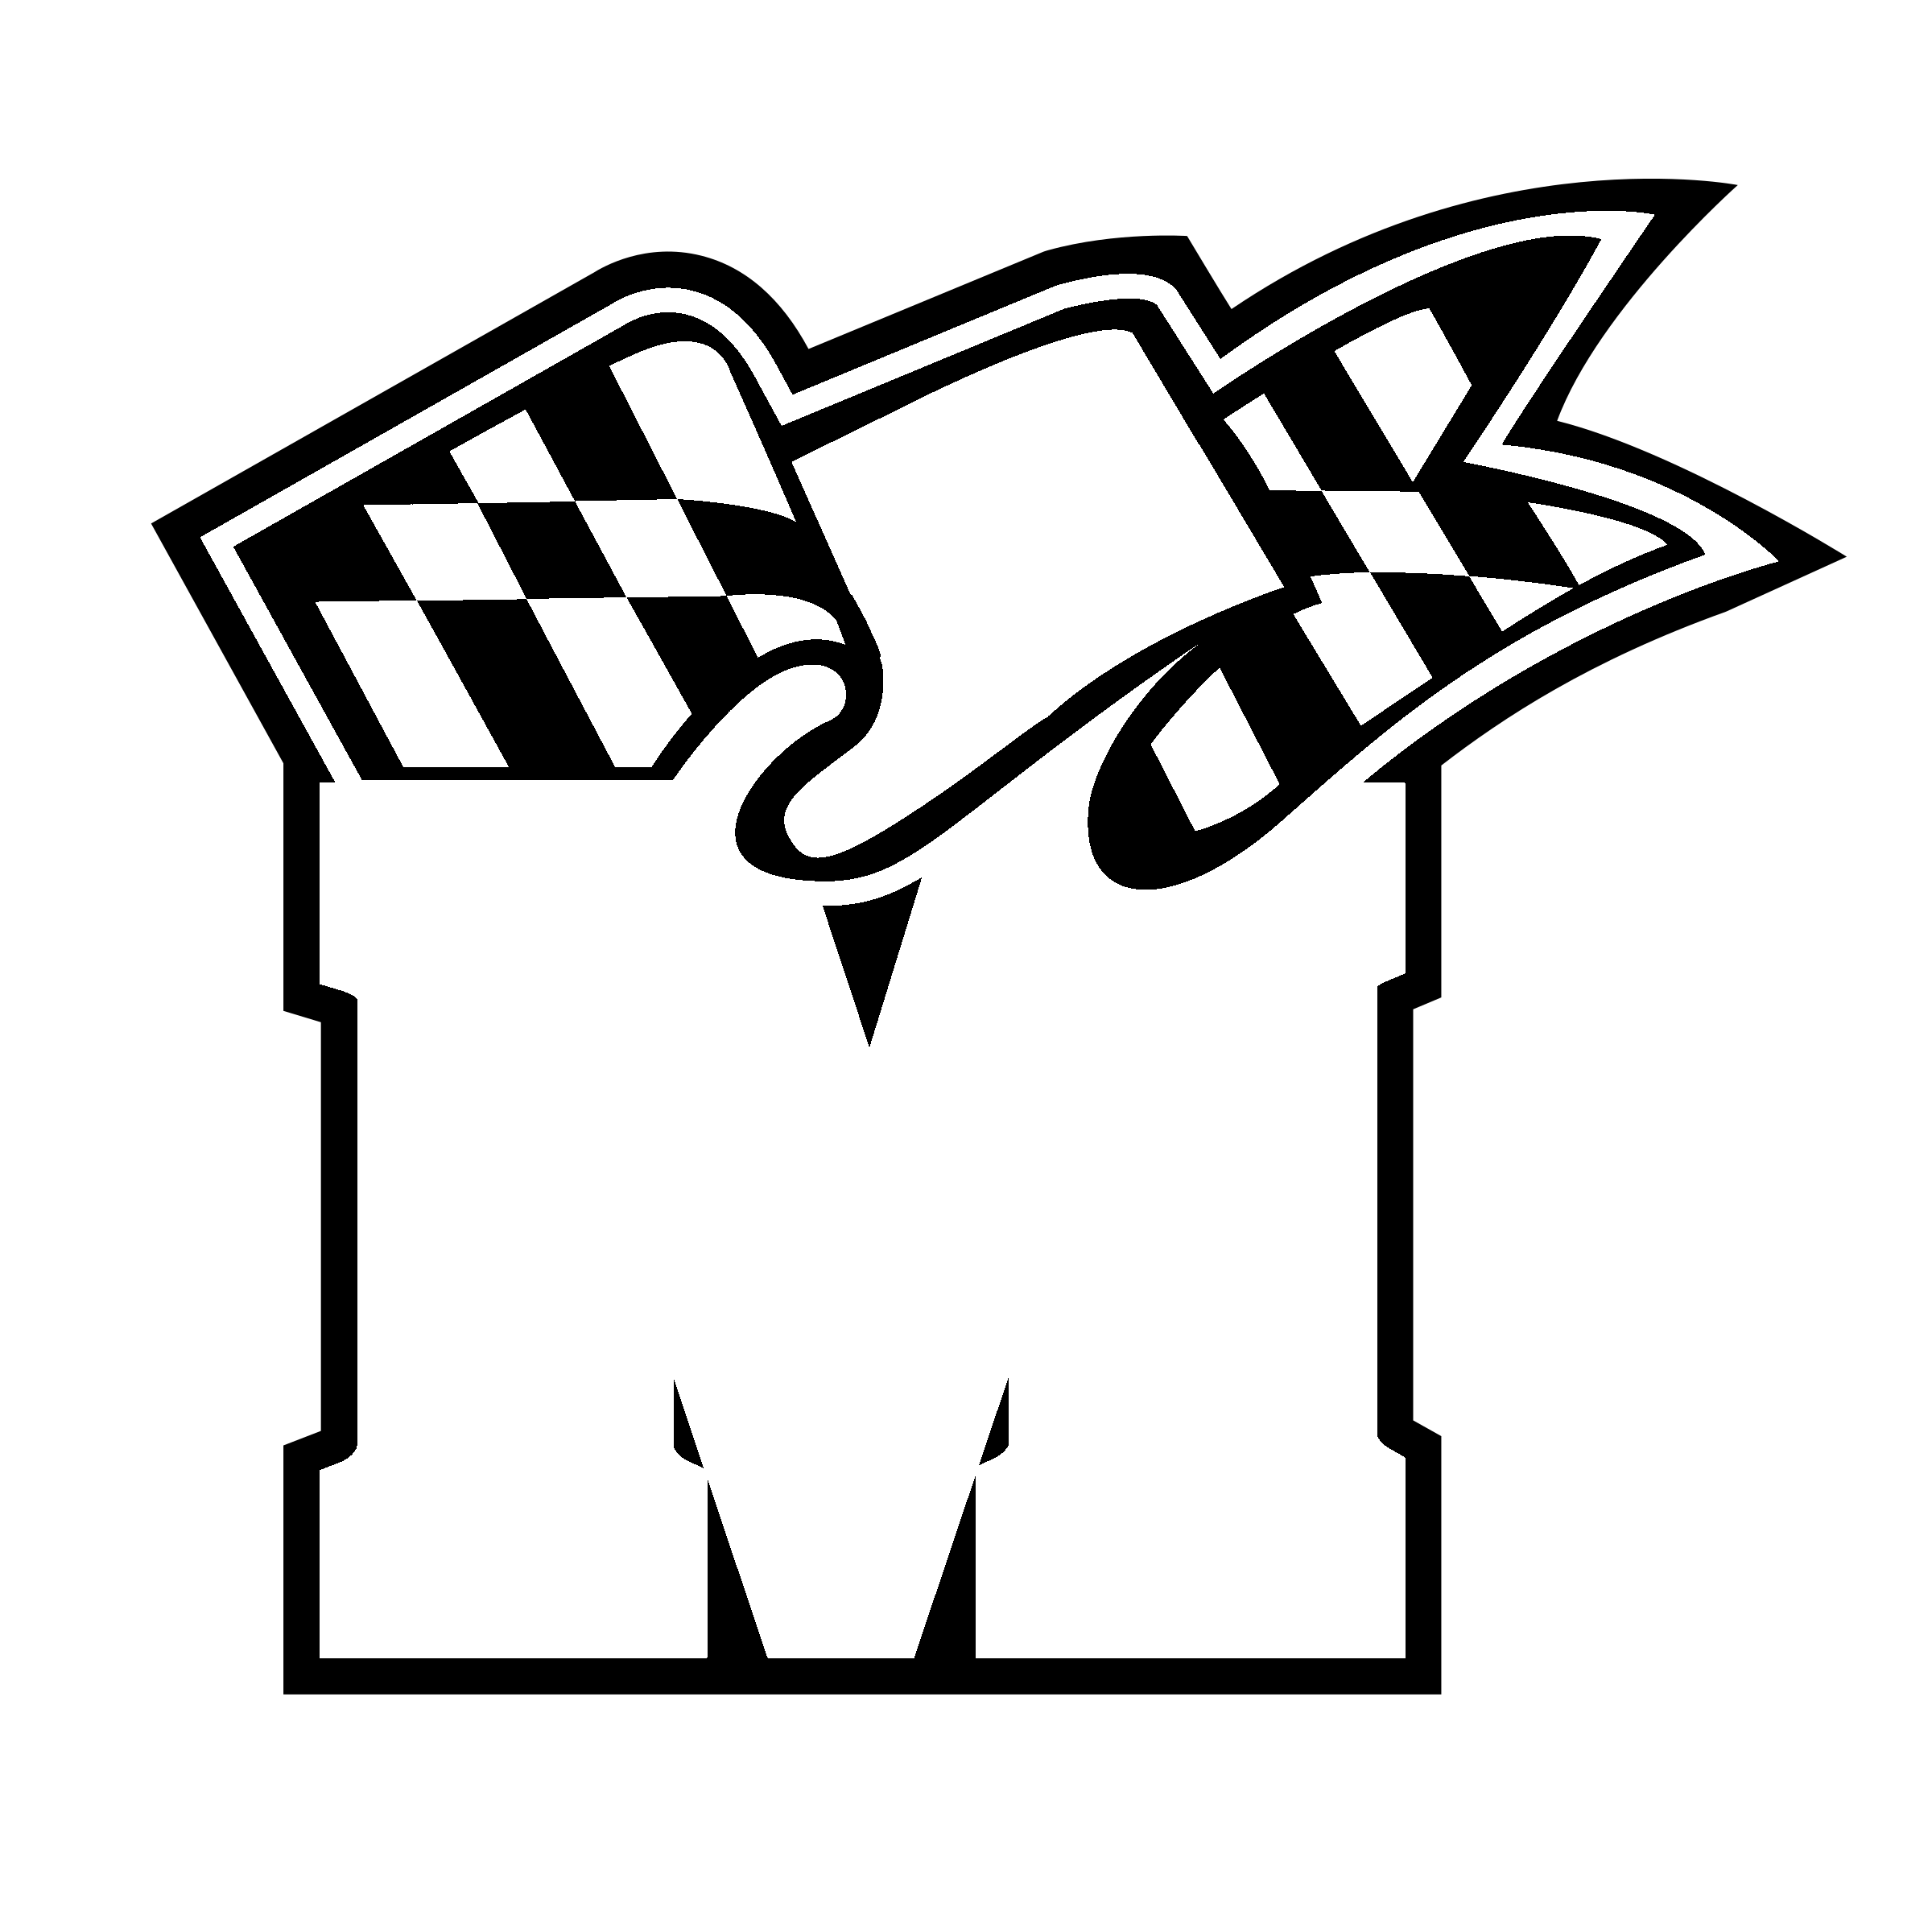 Maryland vector black and white. Terps logo png transparent